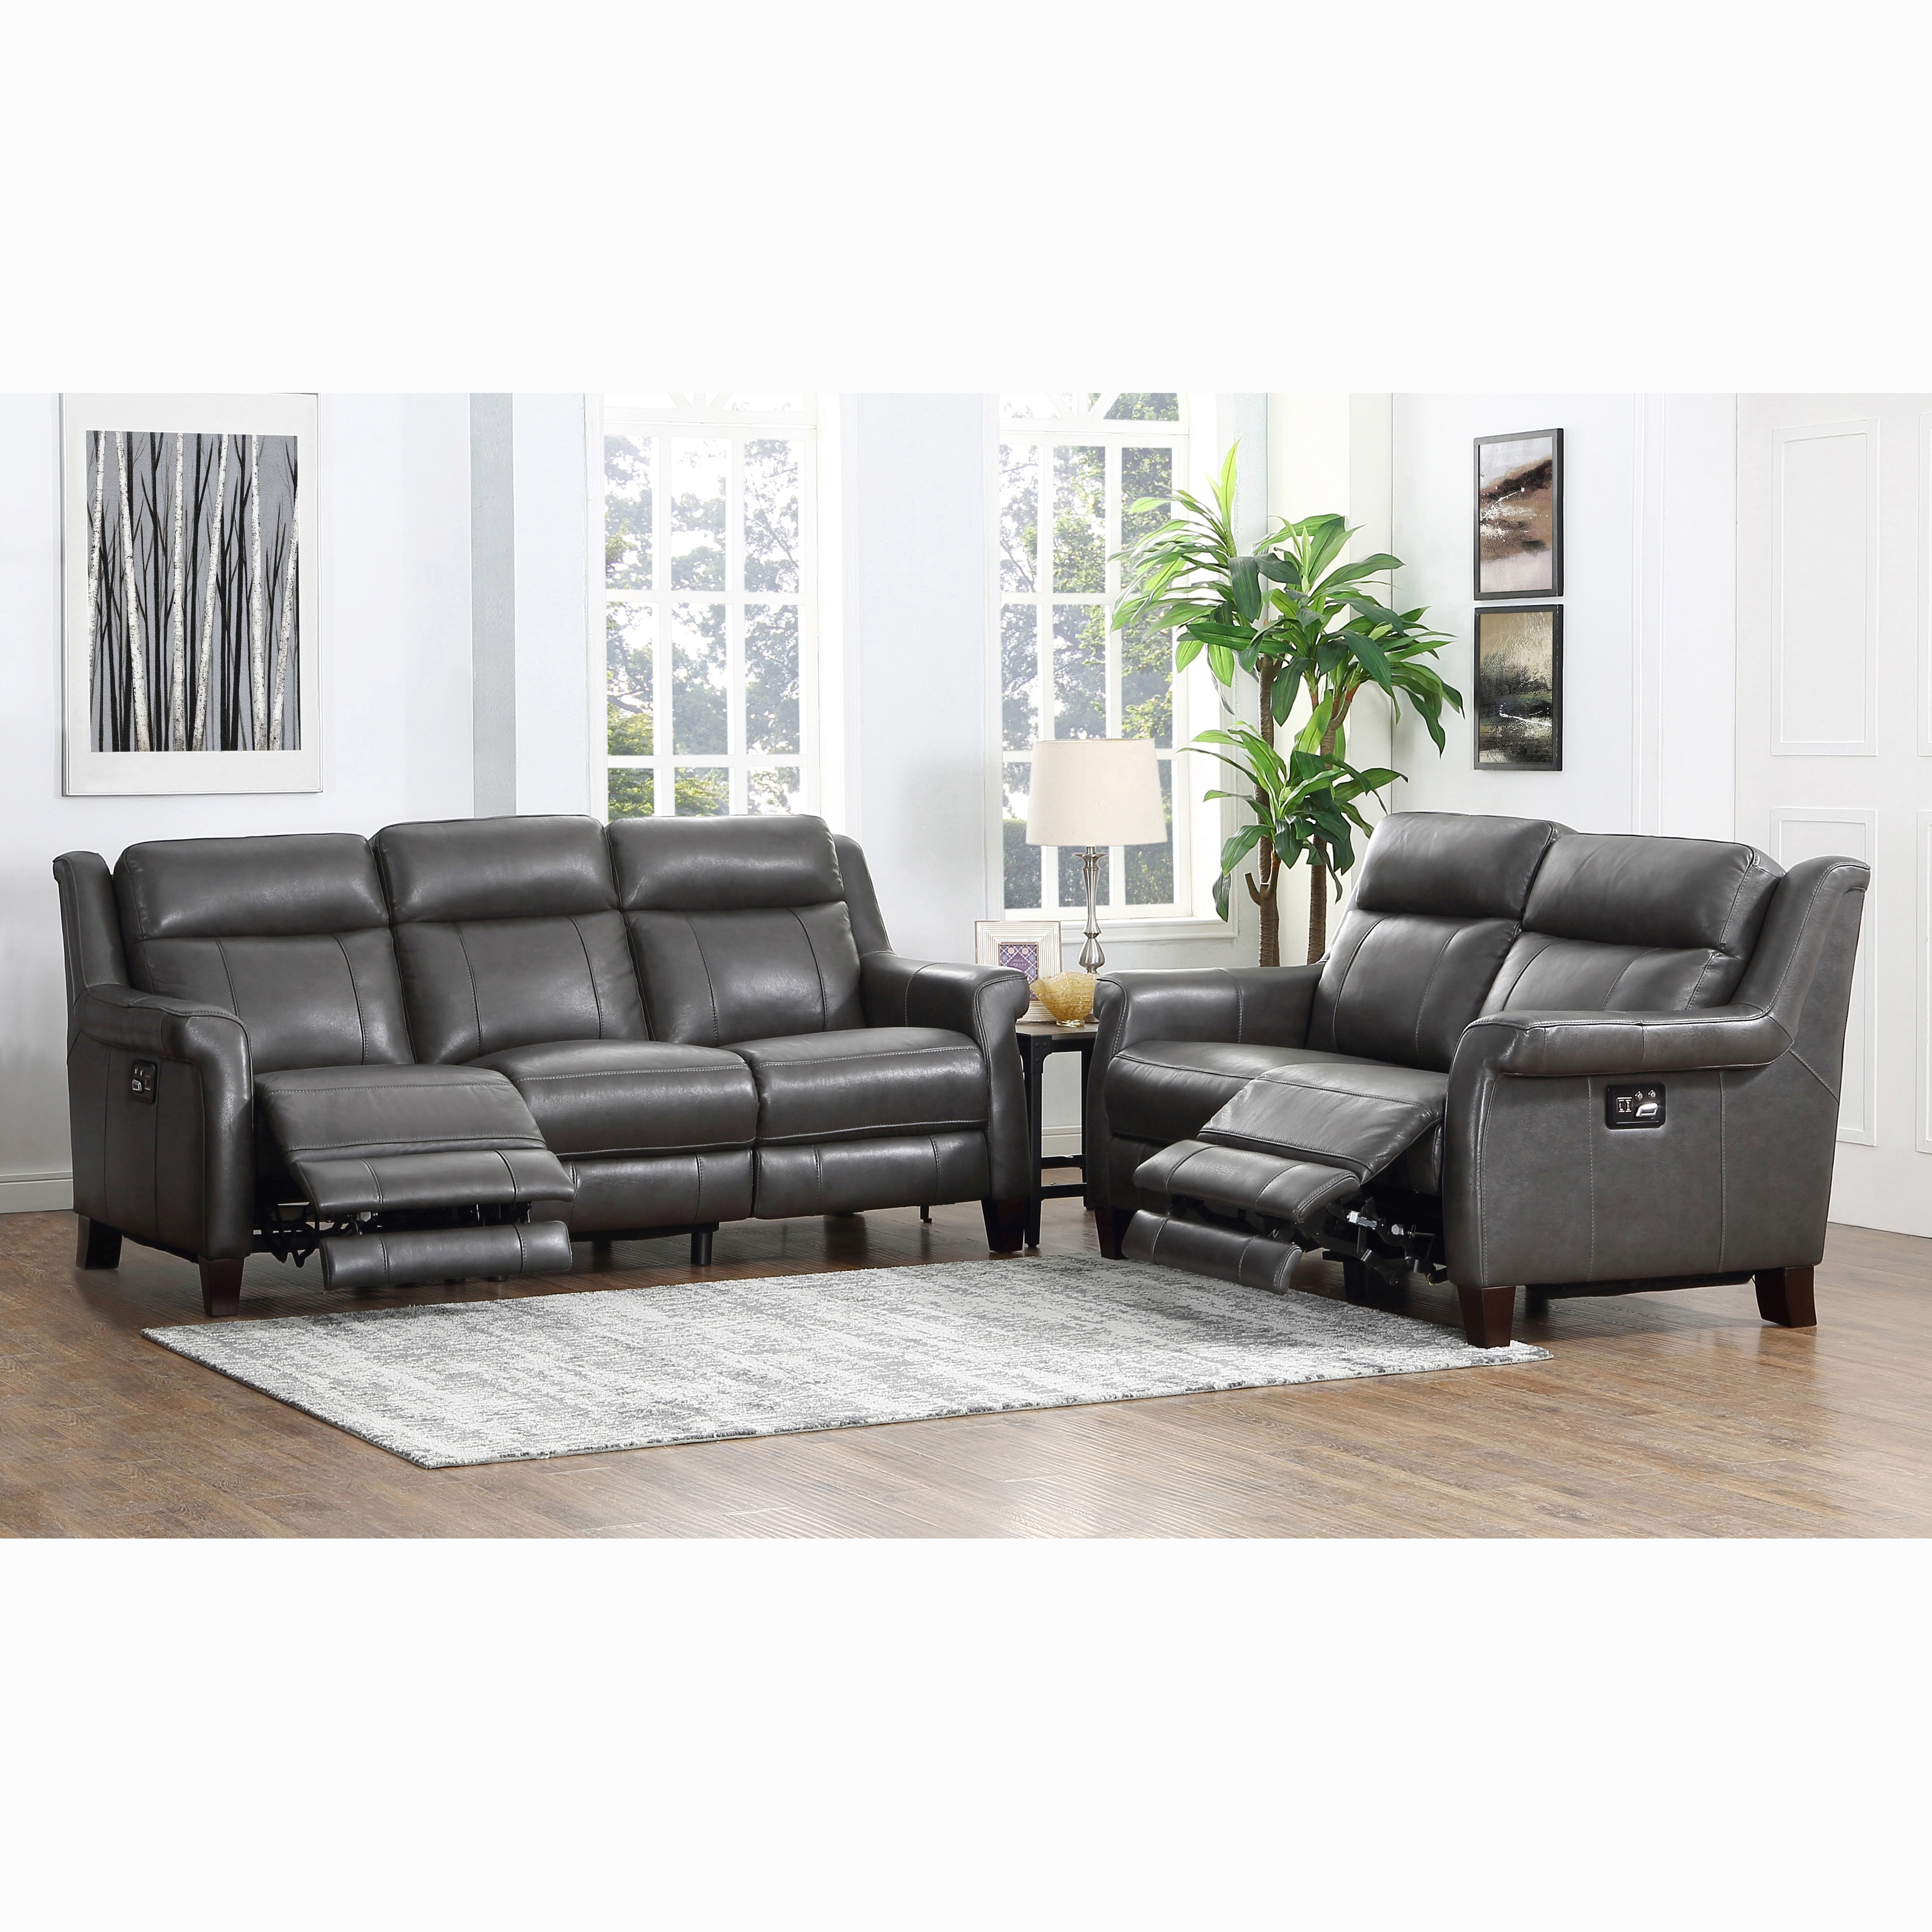 Shop Alex Grey Premium Top Grain Leather Power Reclining Sofa and ...